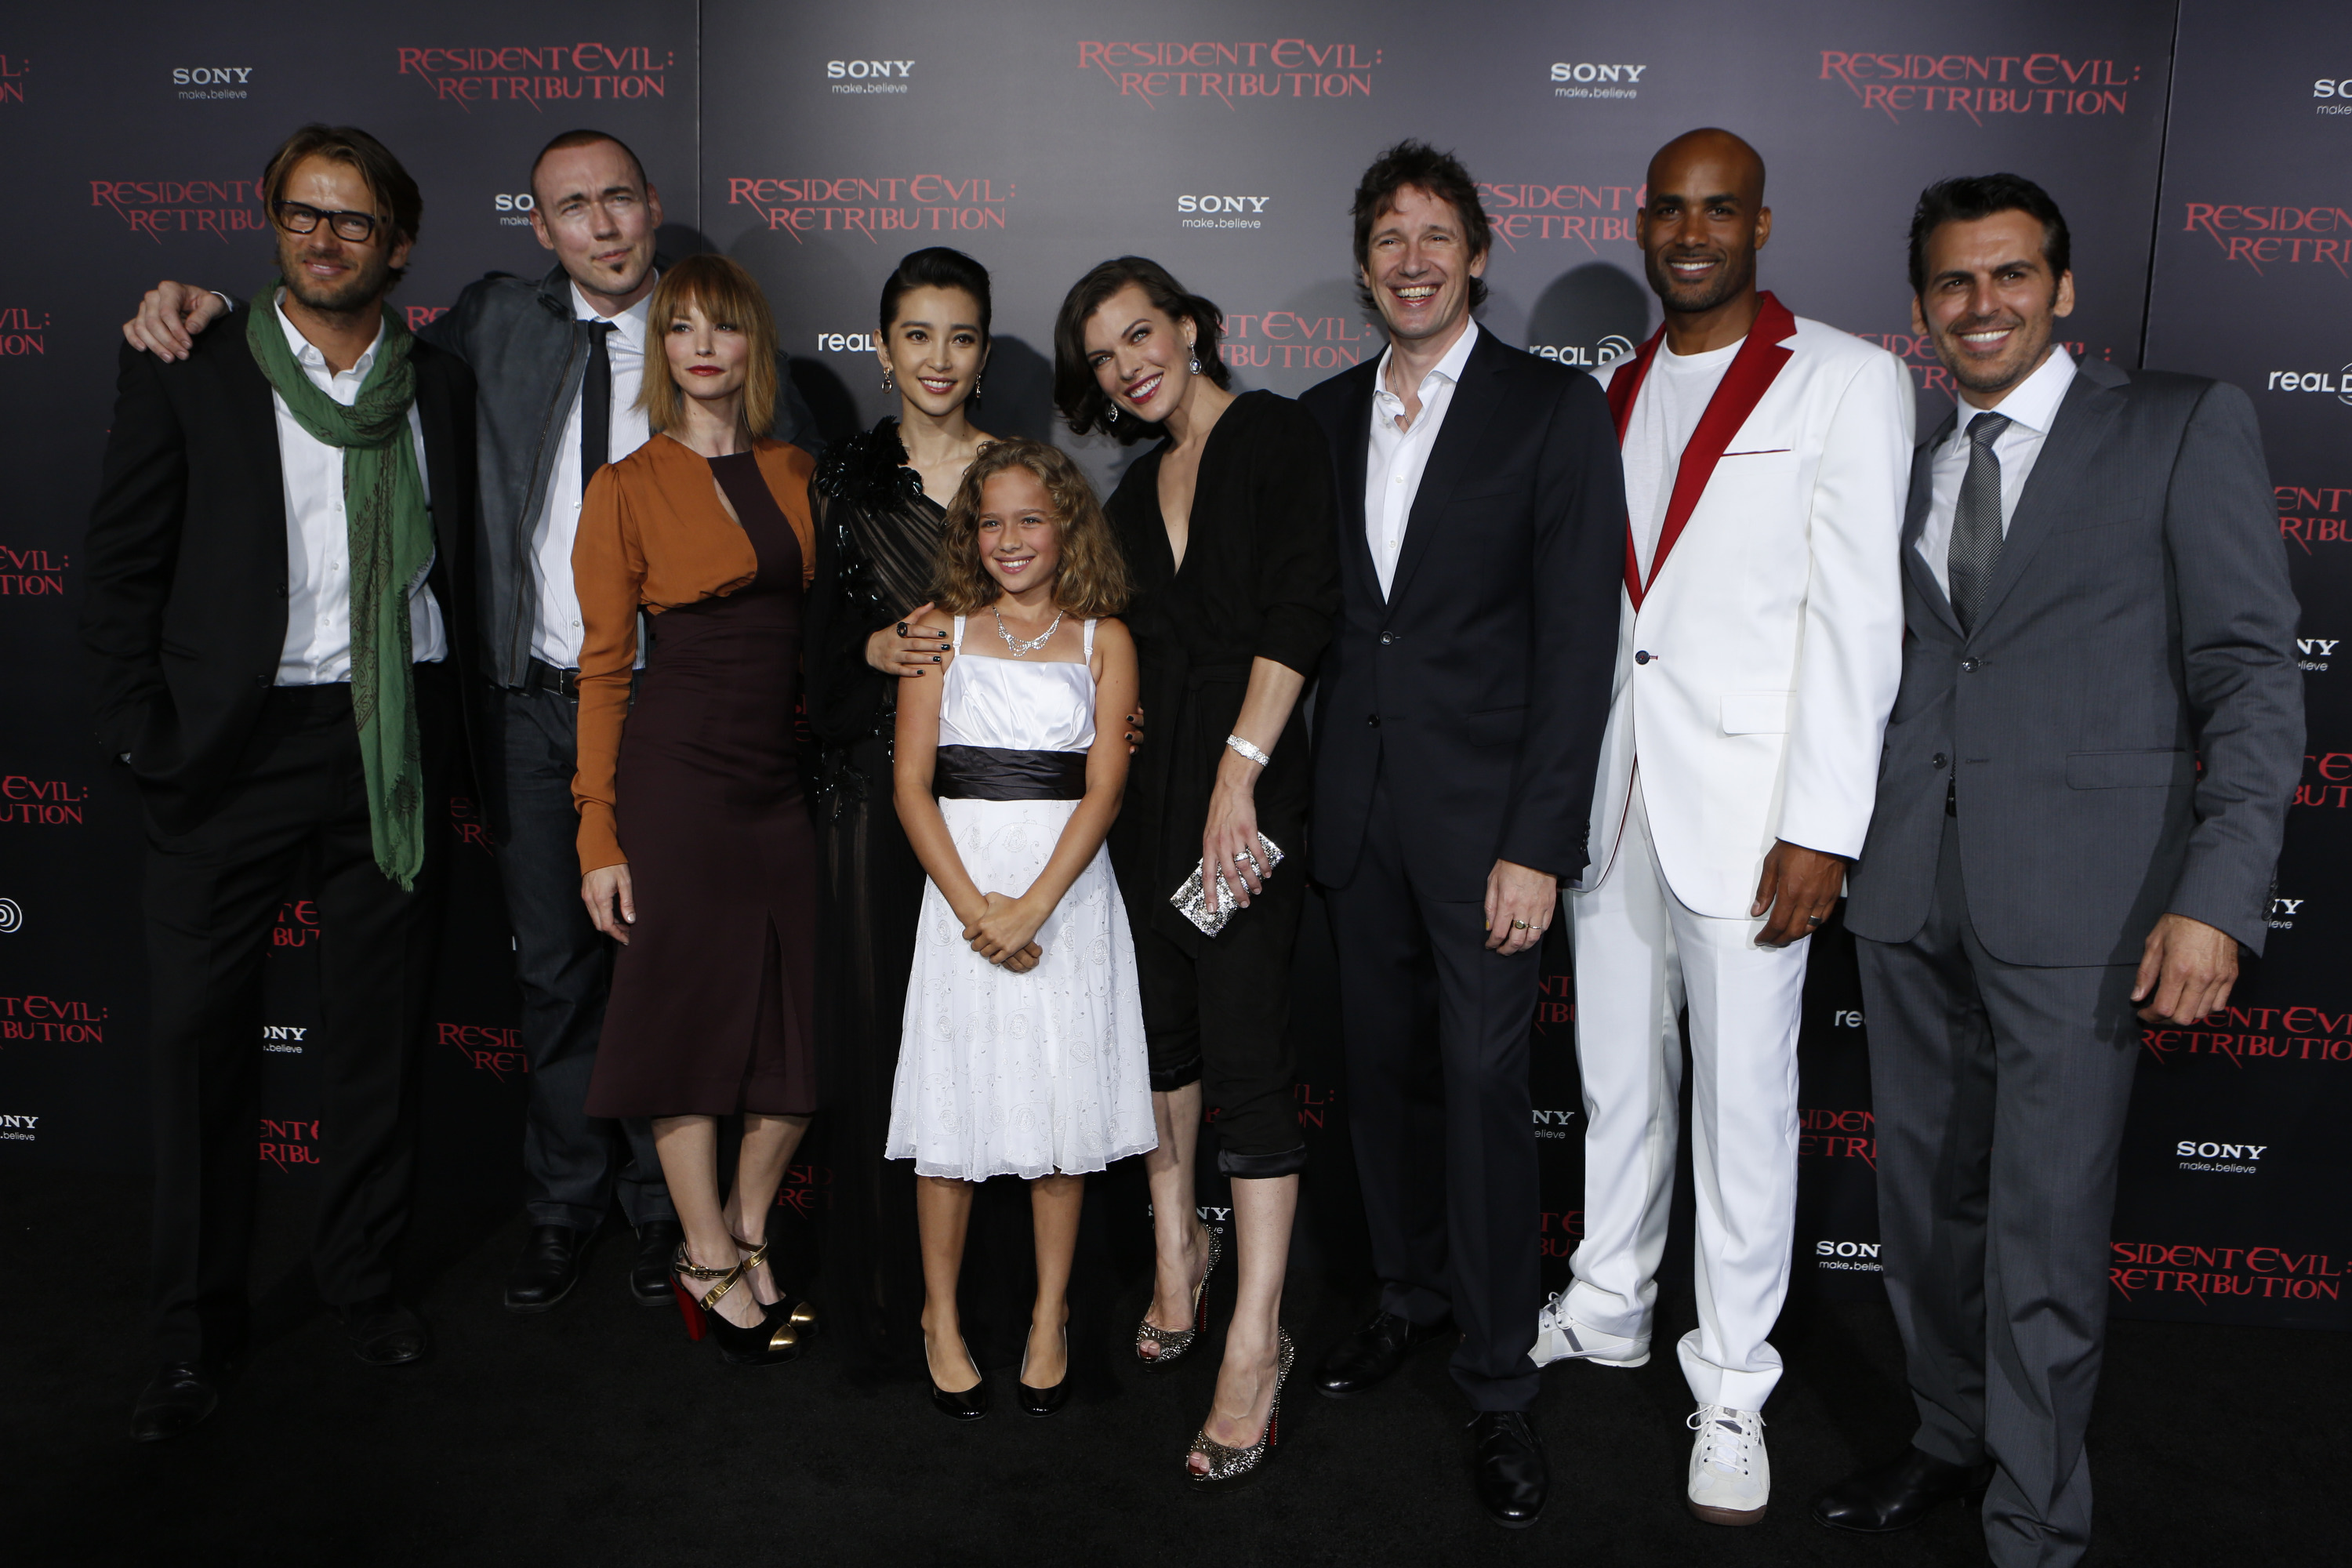 Resident Evil Retribution The L A Premiere Shawn Robers For